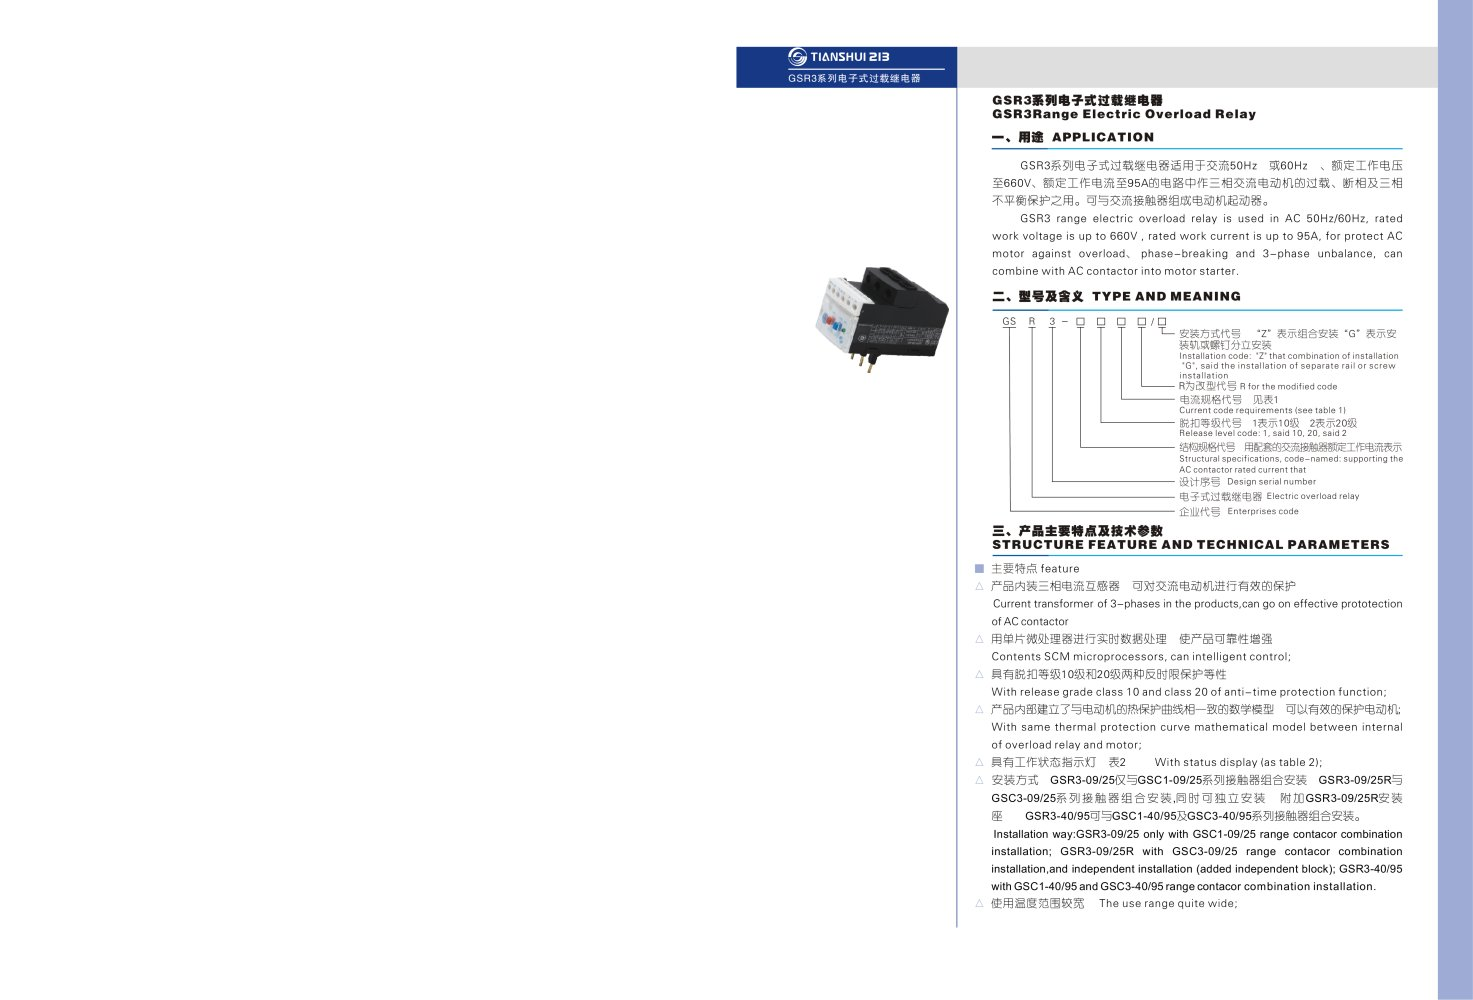 Gsr3 Electrical Overload Relay Tianshui 213 Apparatus Pdf 1 4 Pages